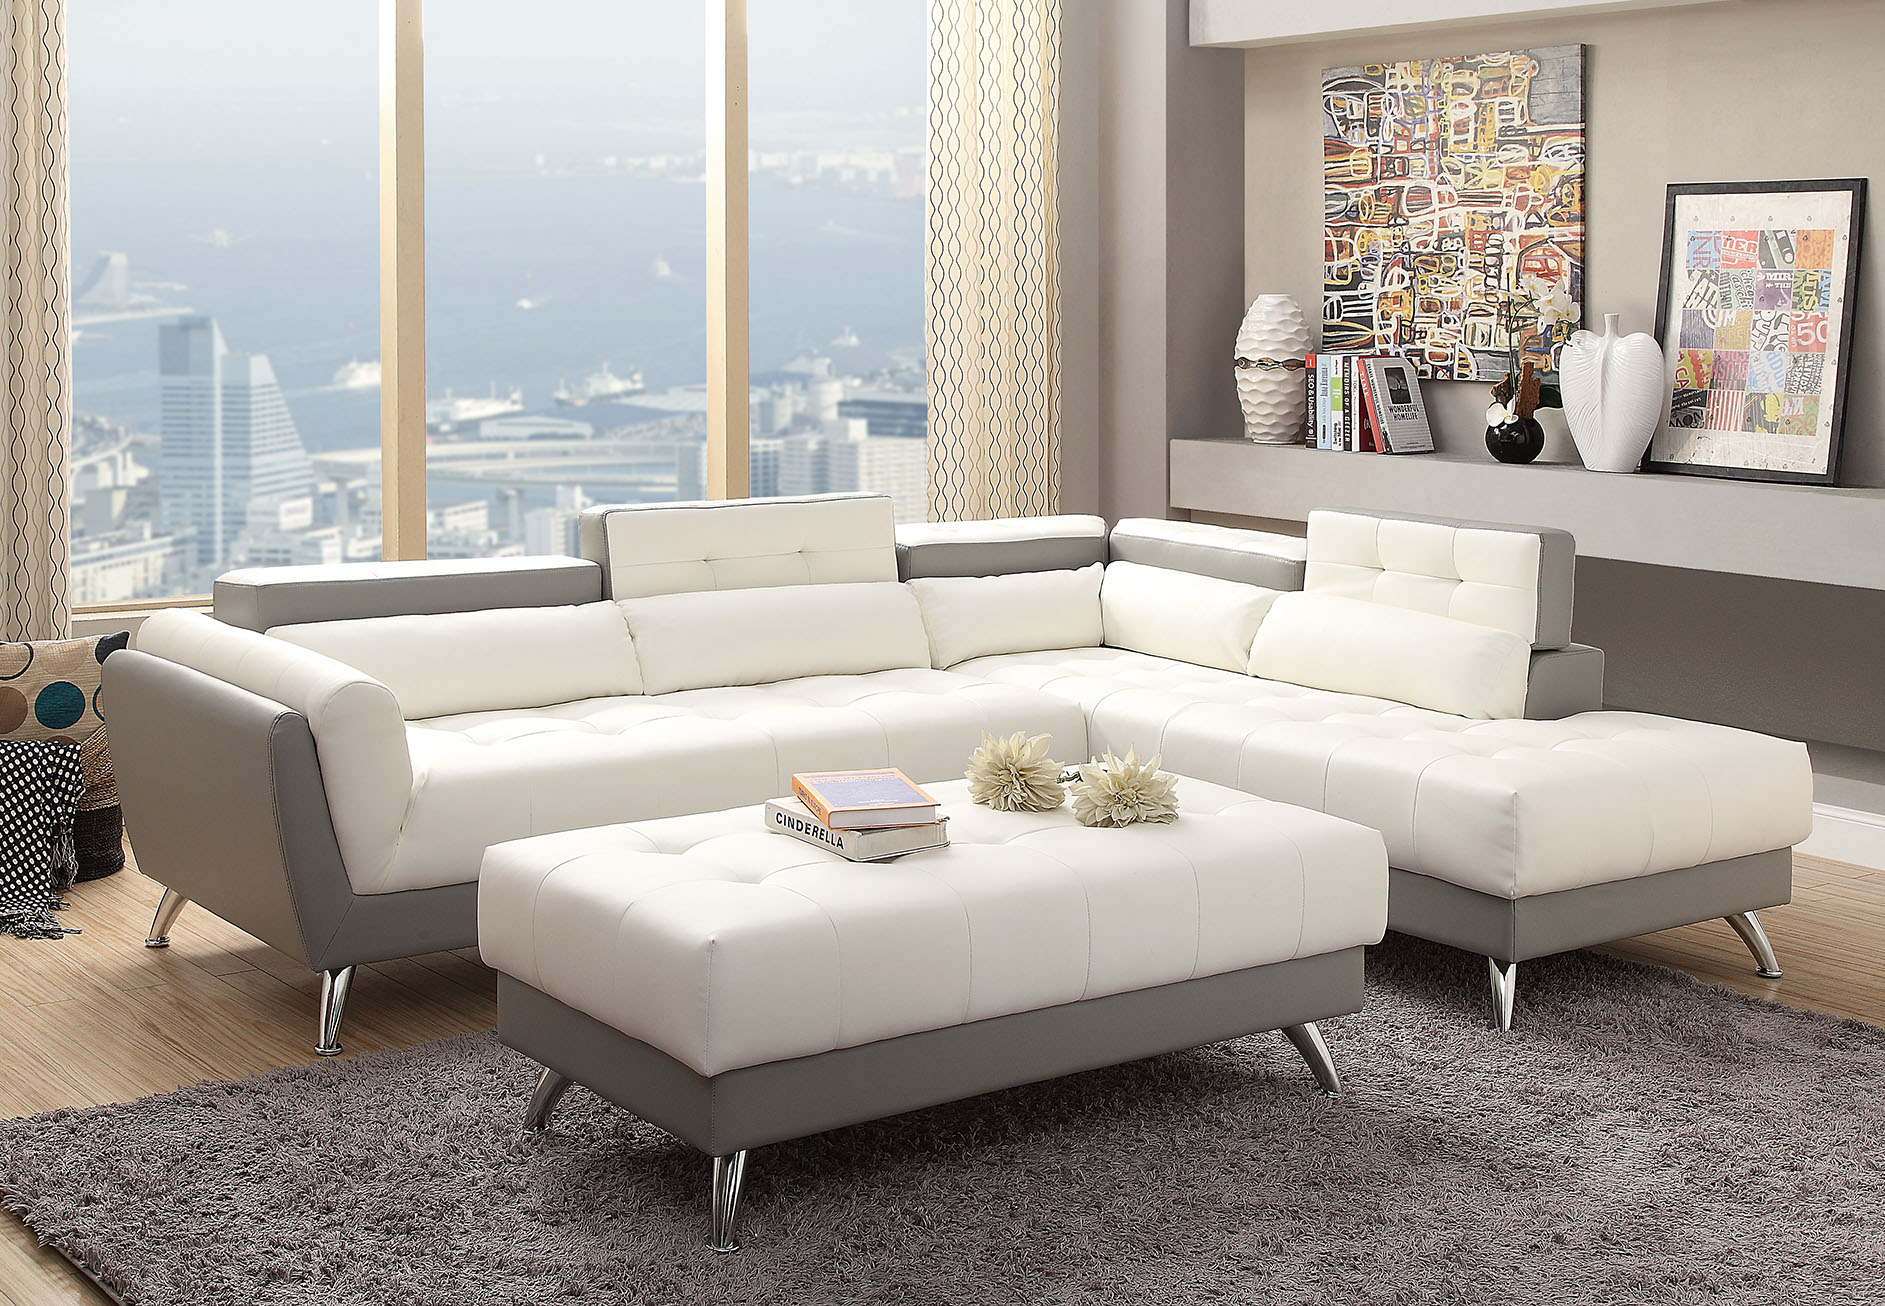 Contemporary Sectional Sofa Miami Gallery Furniture